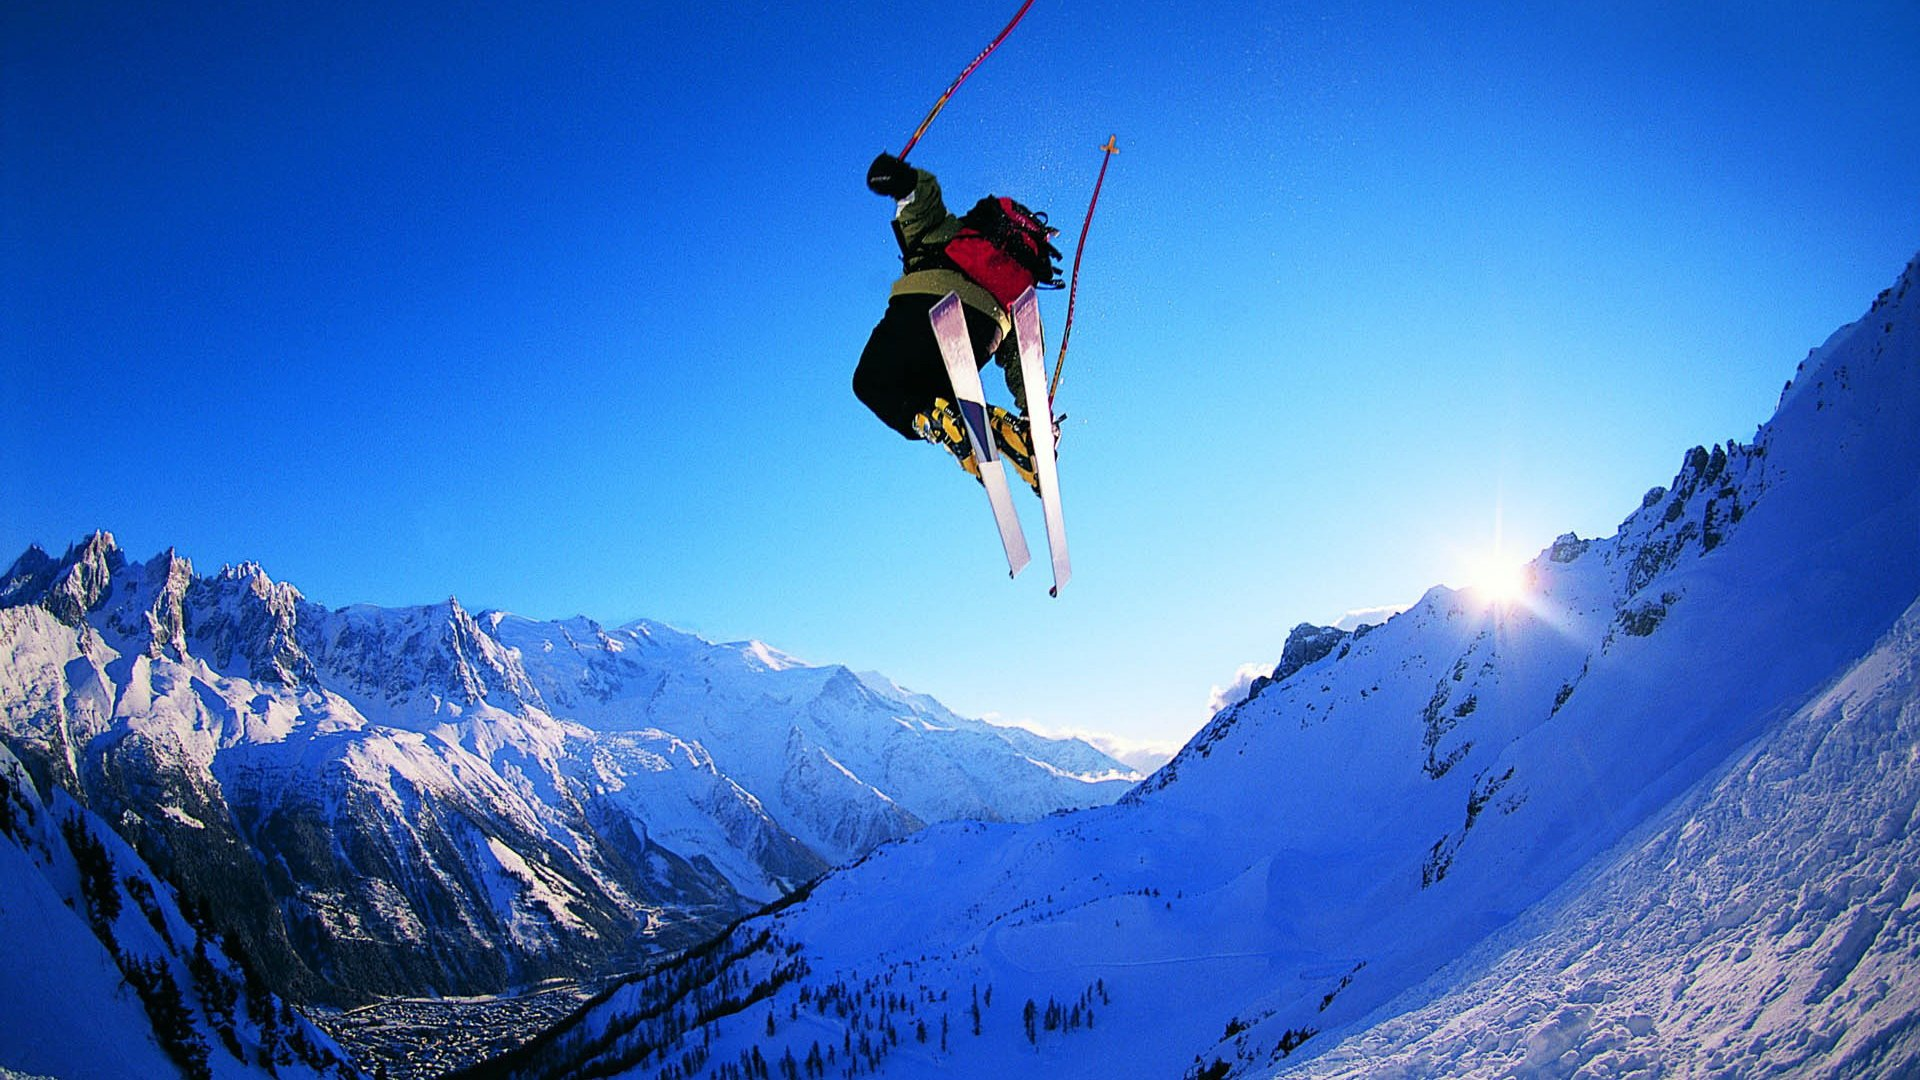 High Definition Collection: Extreme Skiing Wallpaper, 43 Full HD ...